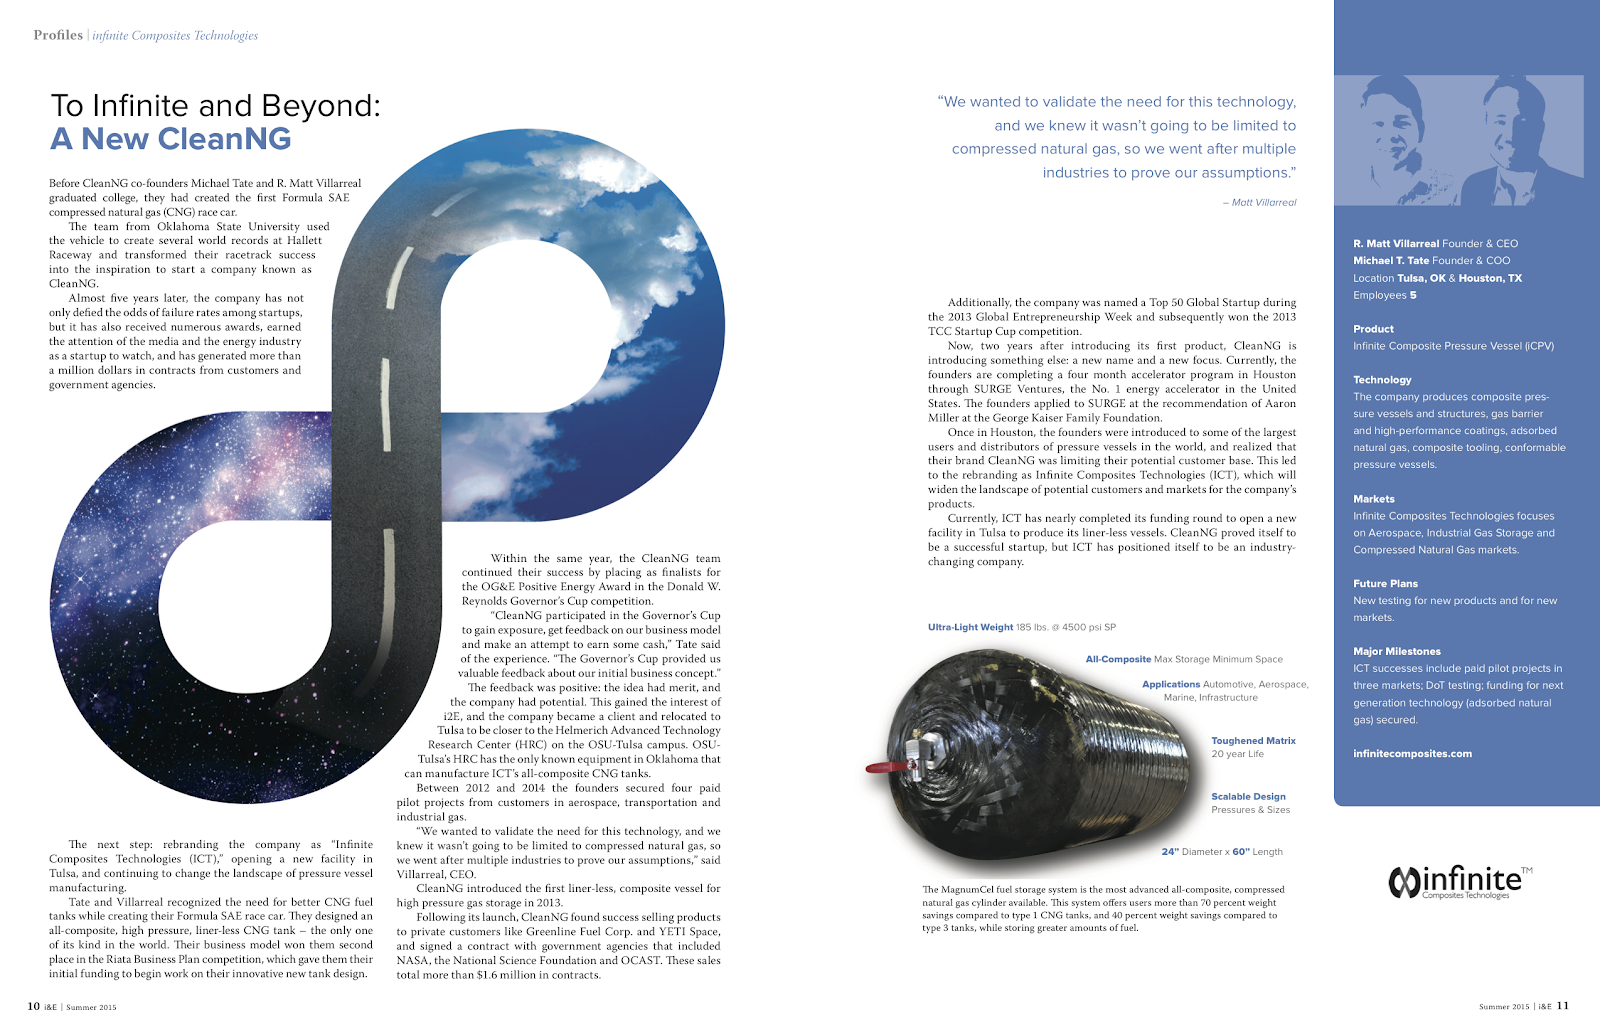 A image of the article posted in Innovators and Entrepreneurs Magazine discussing the name change from CleanNG to Infinite Coposites Technologies